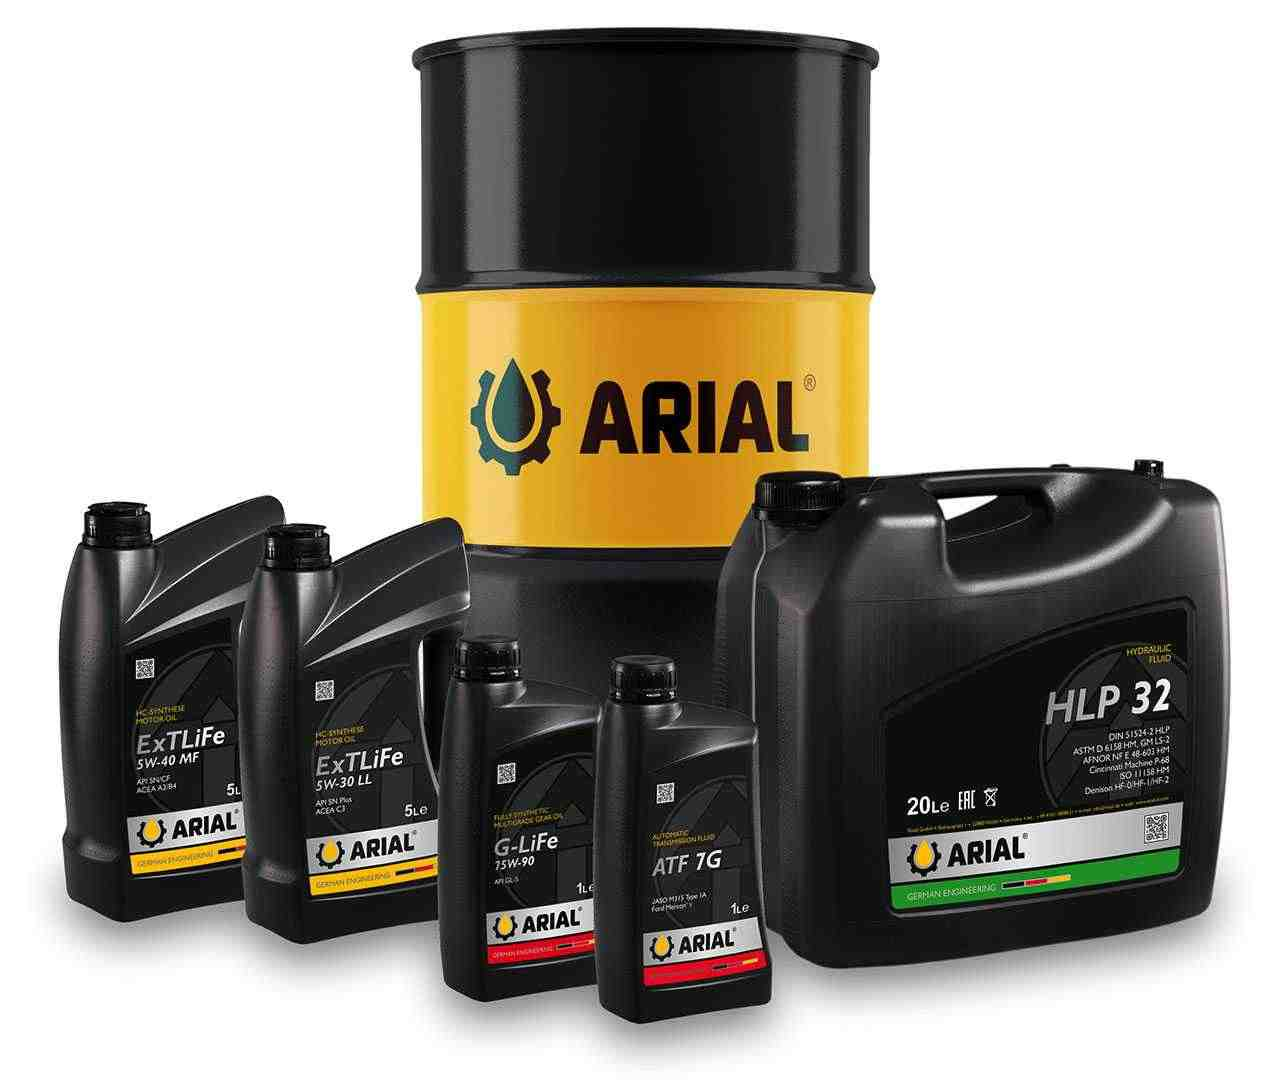 arial-oil-products-about-us-2.jpg